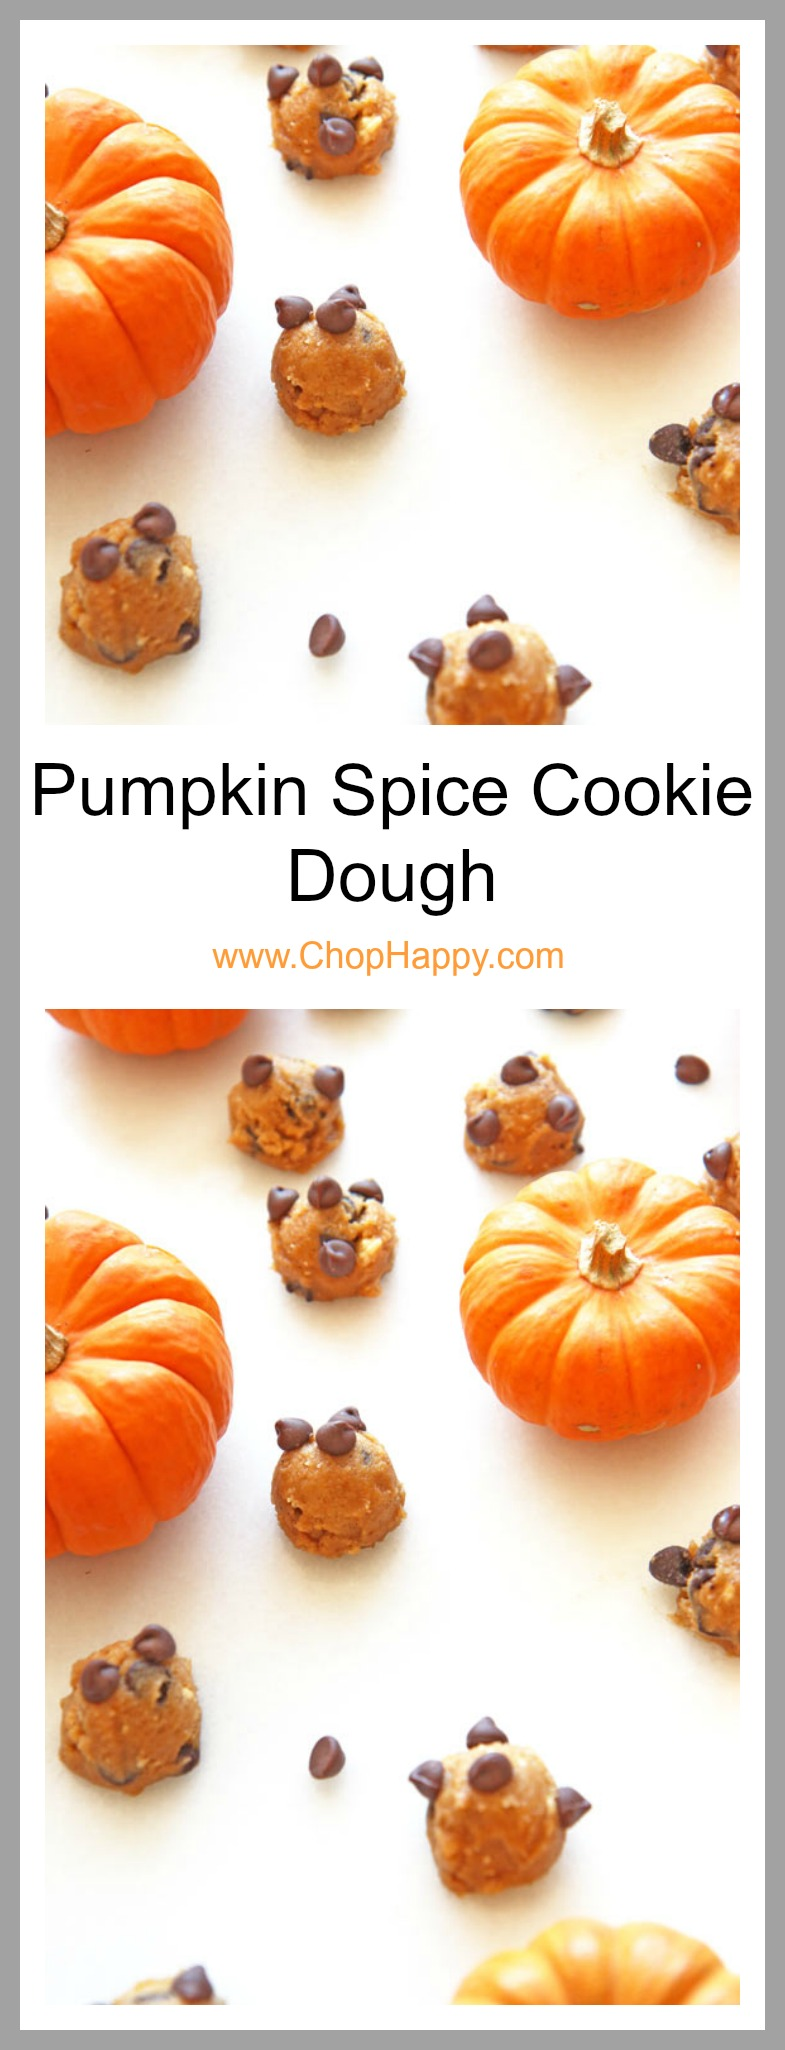 Pumpkin Spice Cookie Dough Recipe - is as easy as drop all the ingredients in the bowl, stir, and eat. Its decadent comfort food dessert. The best part is its a sweet No-Bake dessert. www.ChopHappy.com